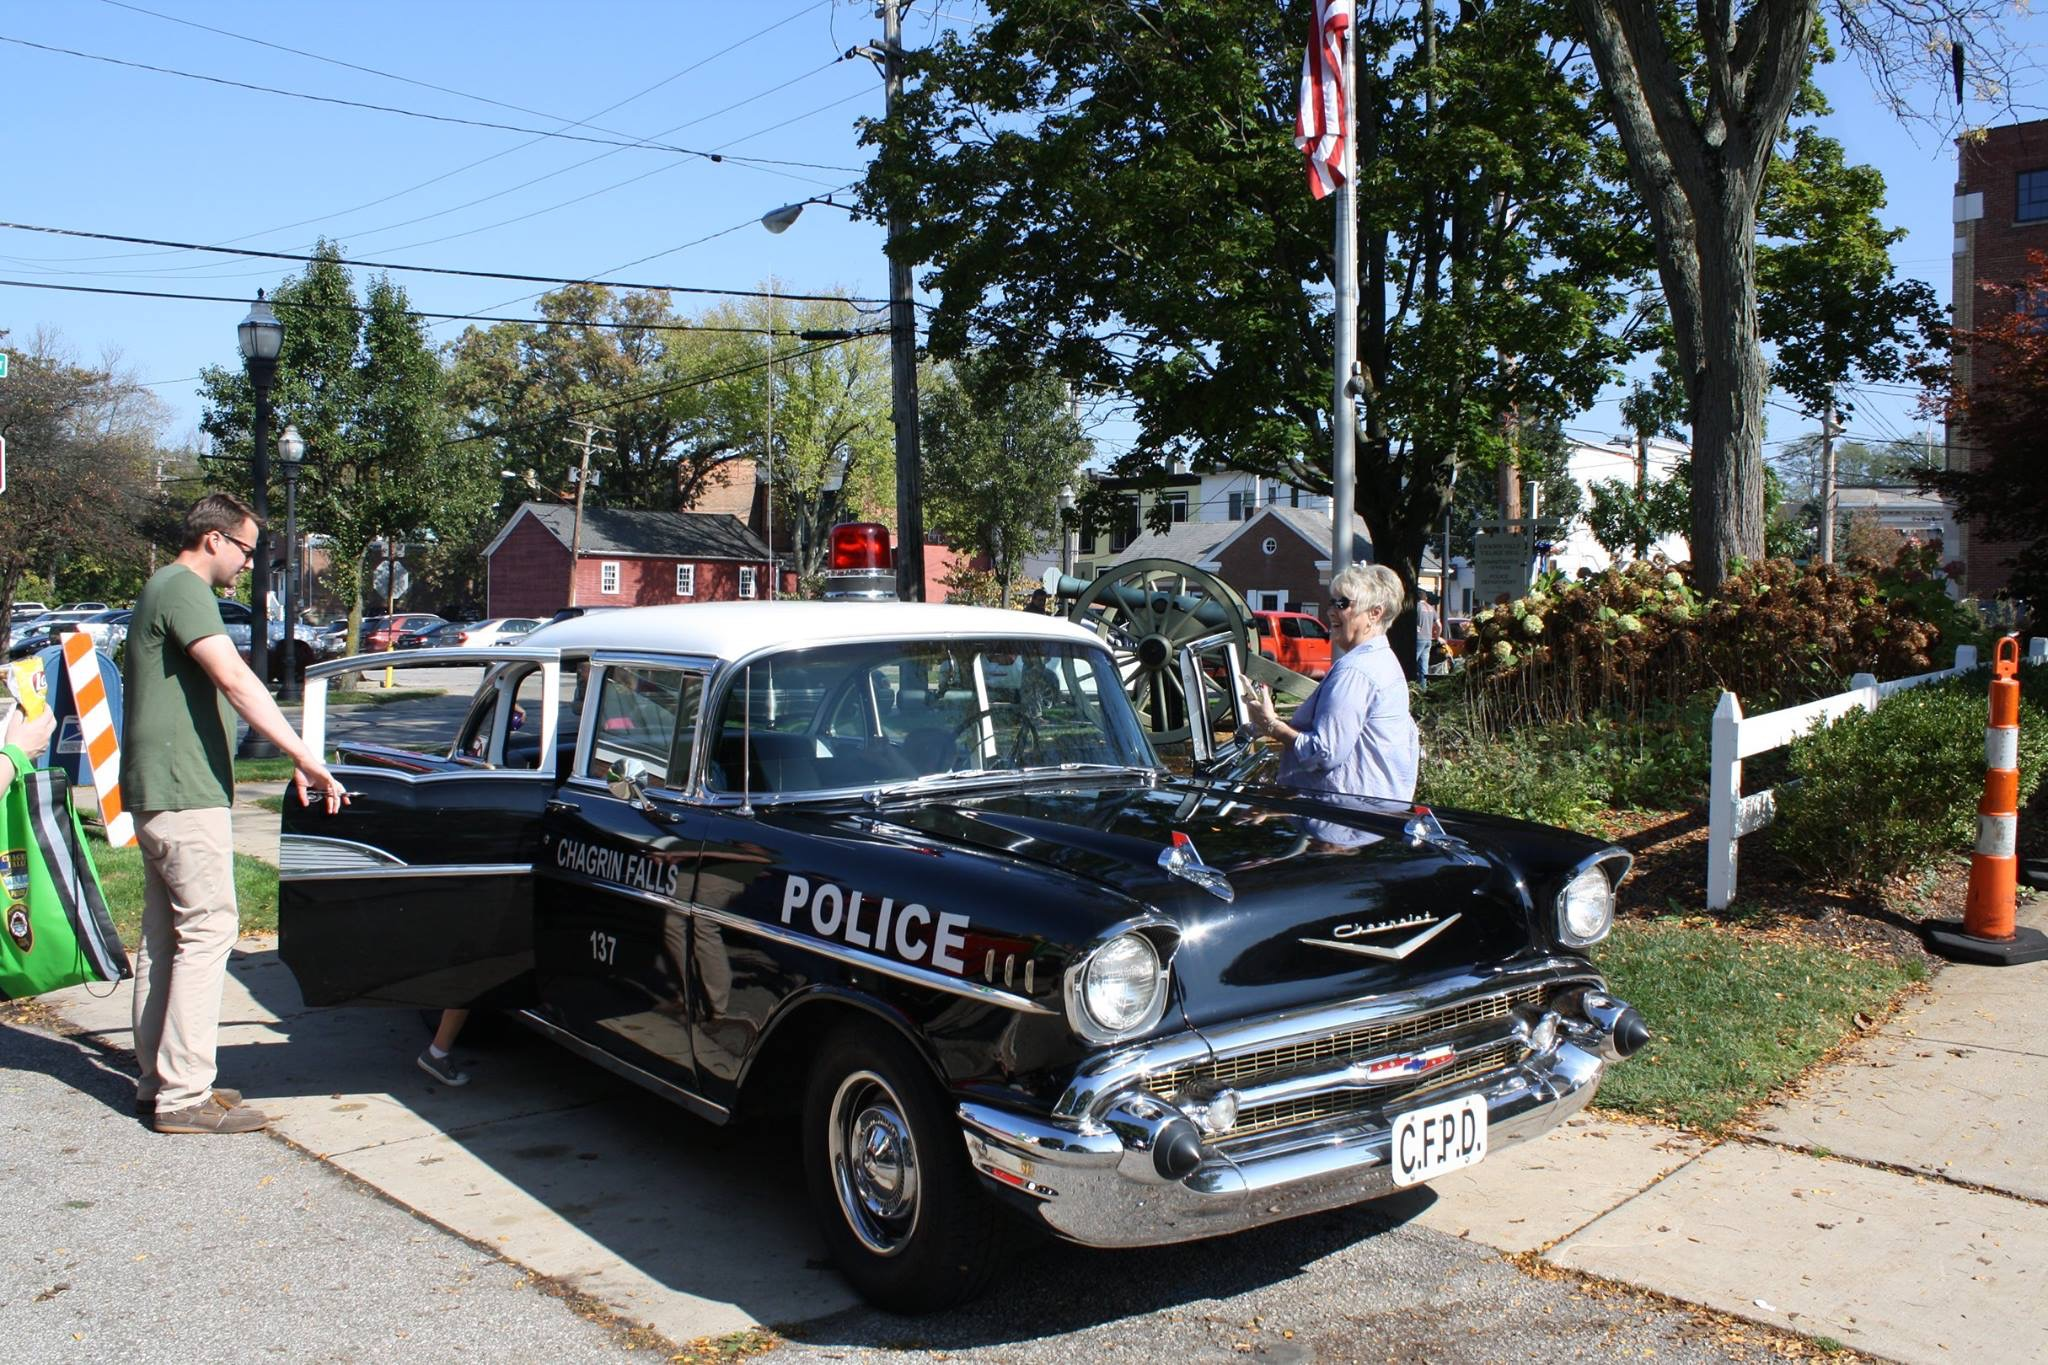 Chagrin Falls Police Department | The Village of Chagrin Falls